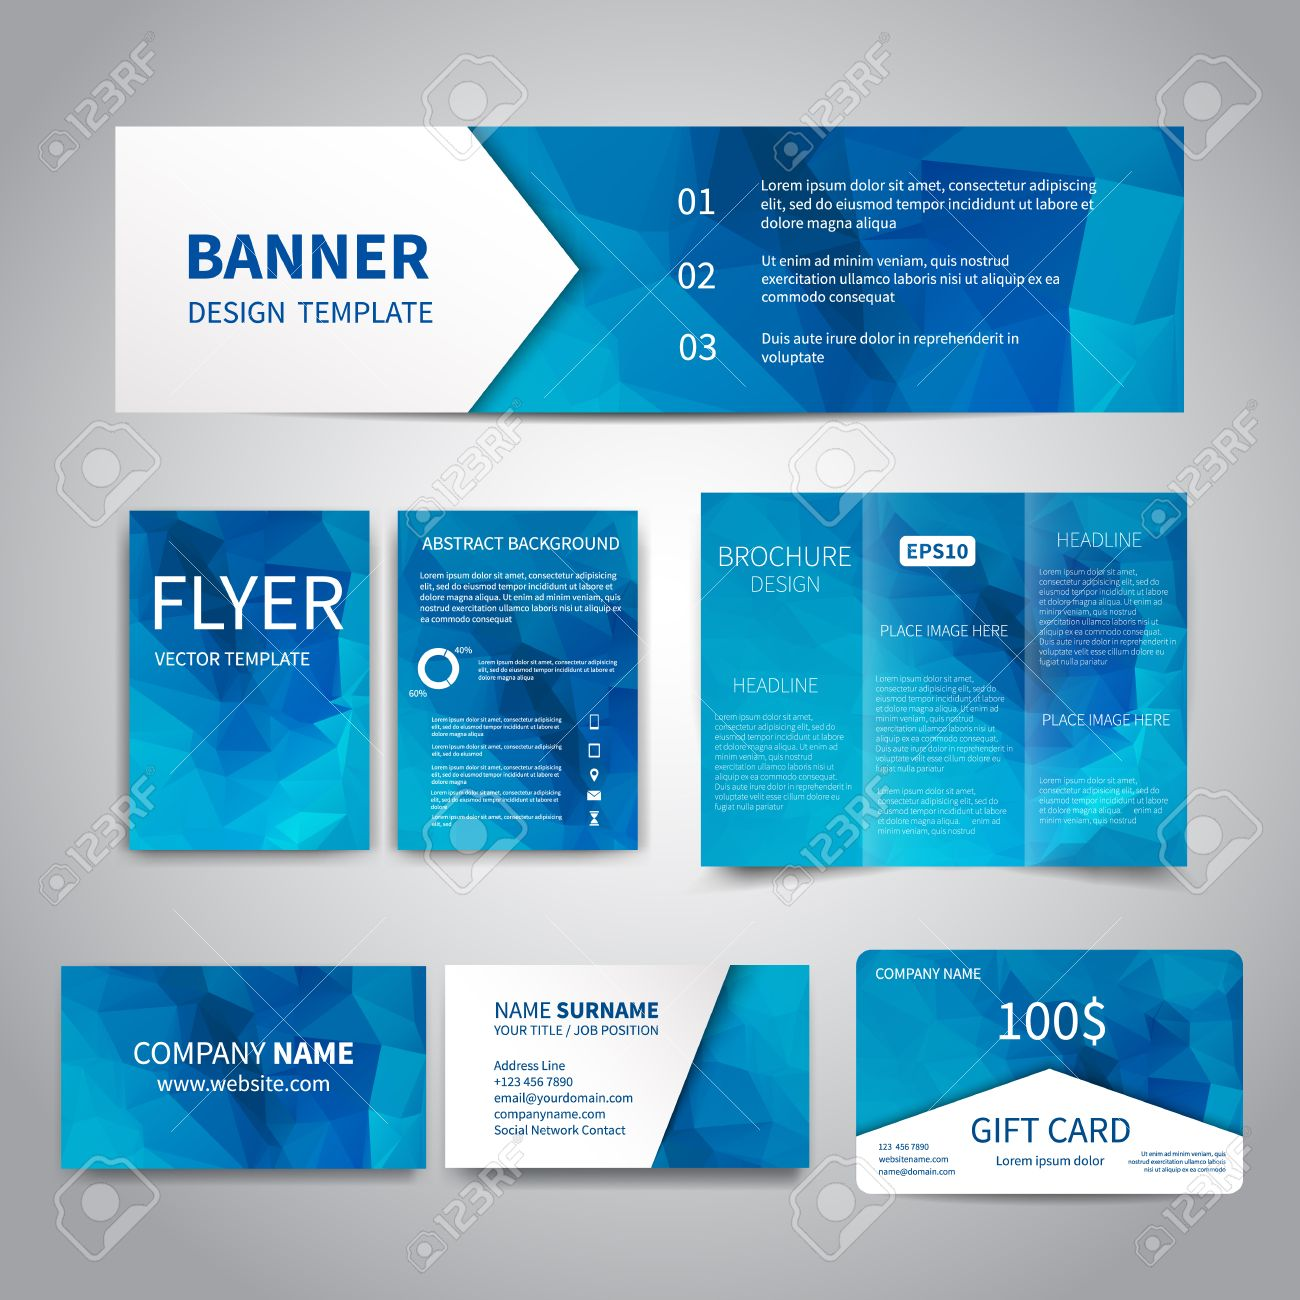 Banner flyers brochure business cards gift card design templates banner flyers brochure business cards gift card design templates set with geometric reheart